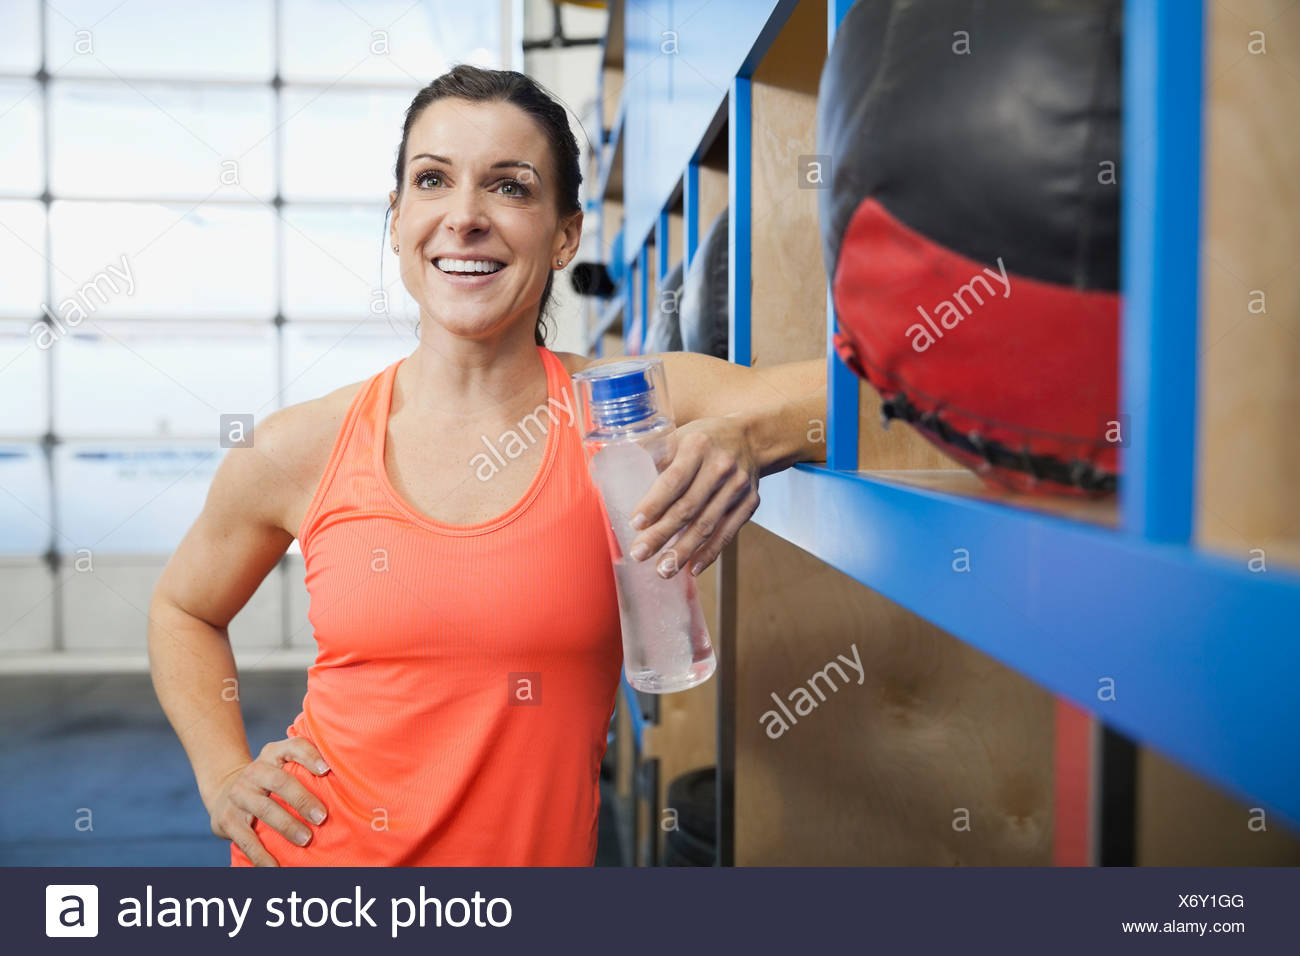 Woman holding water bottle in gym - Stock Image